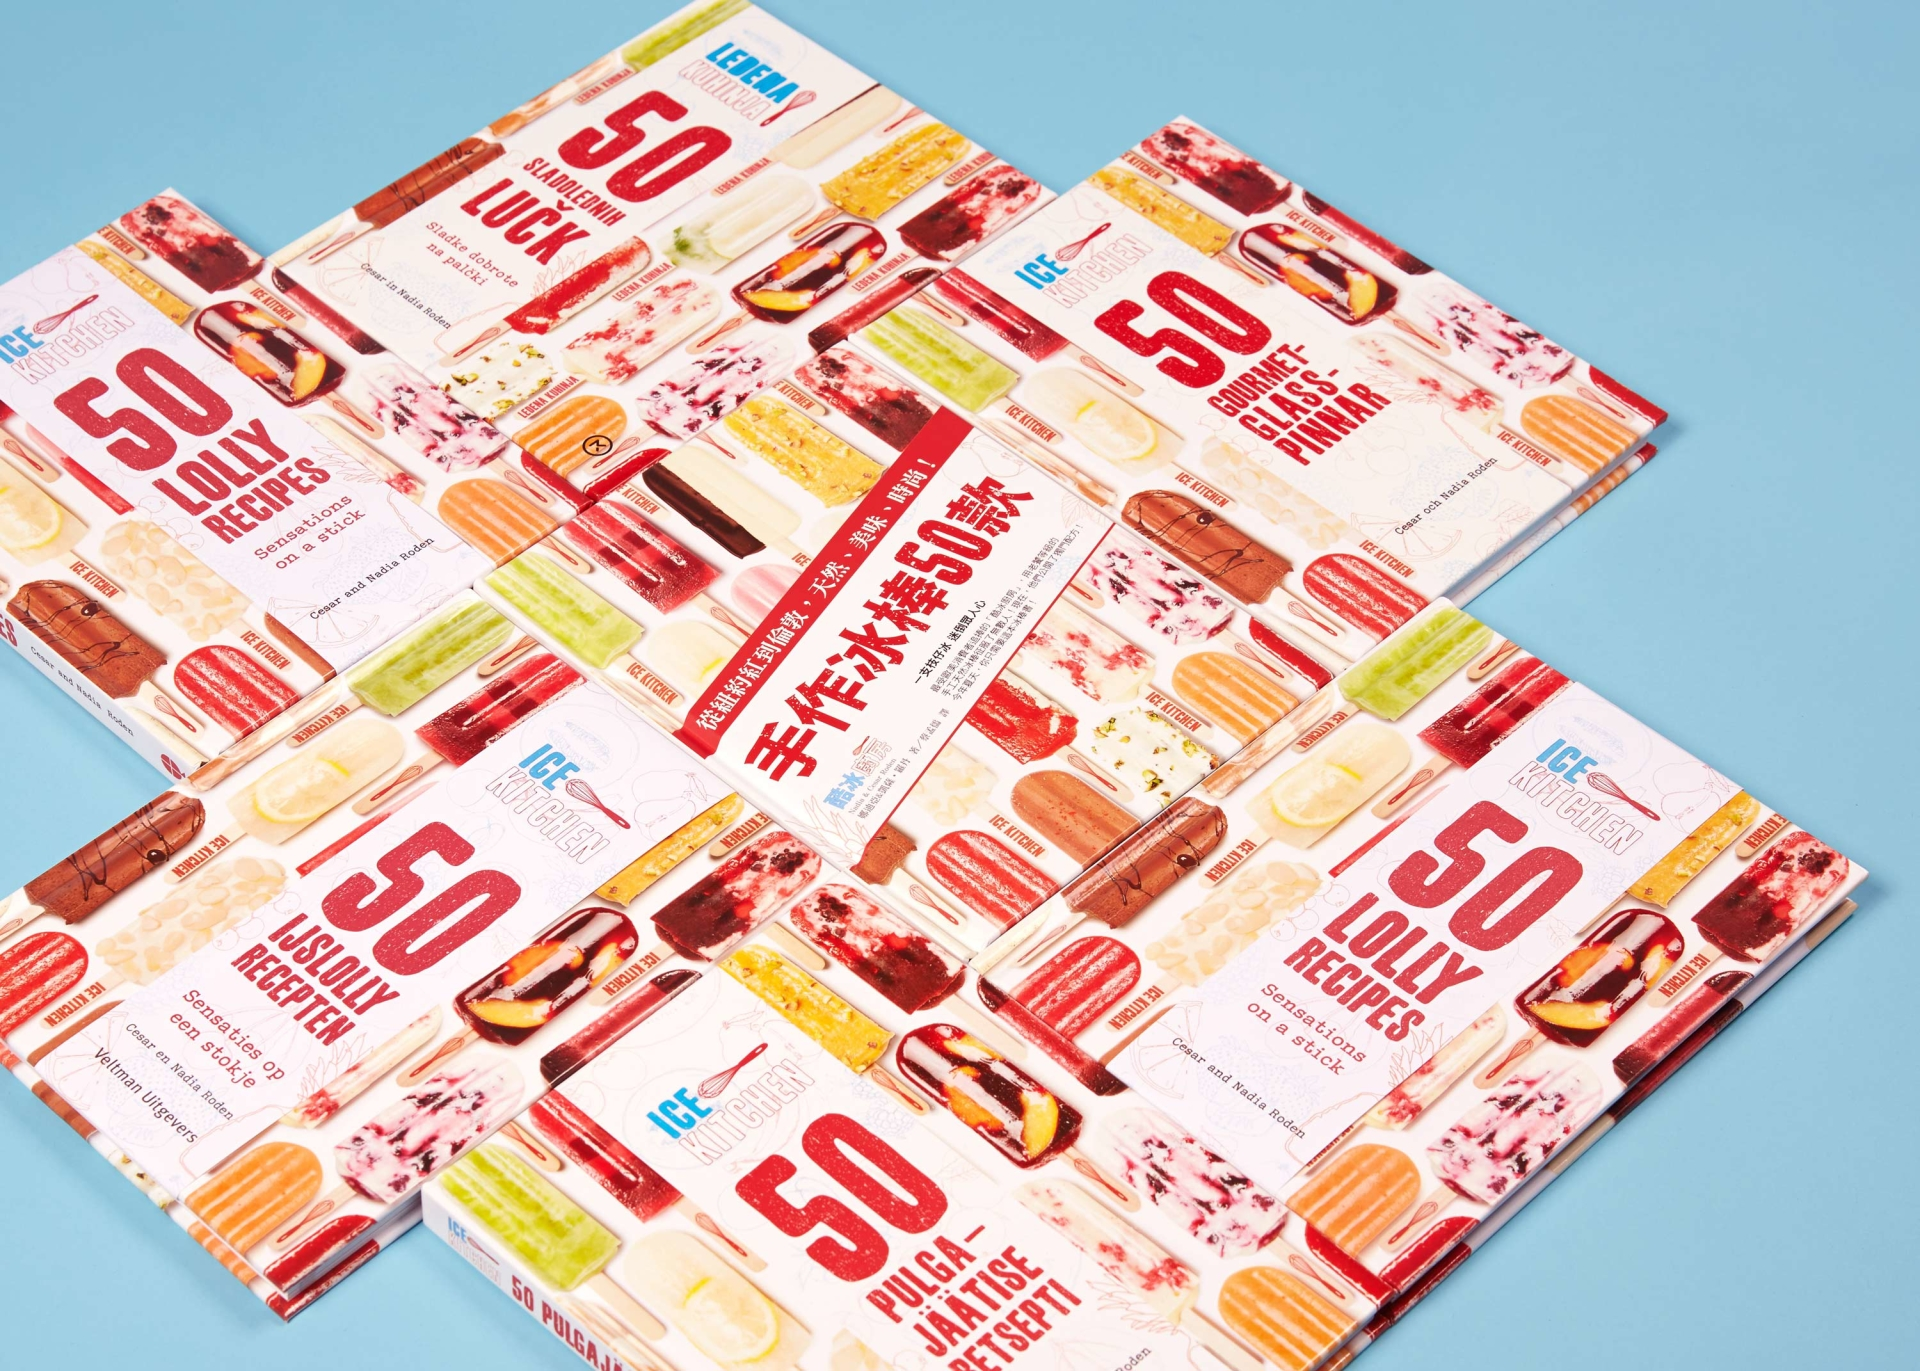 Peter Roden Design 50 Lolly Recipes